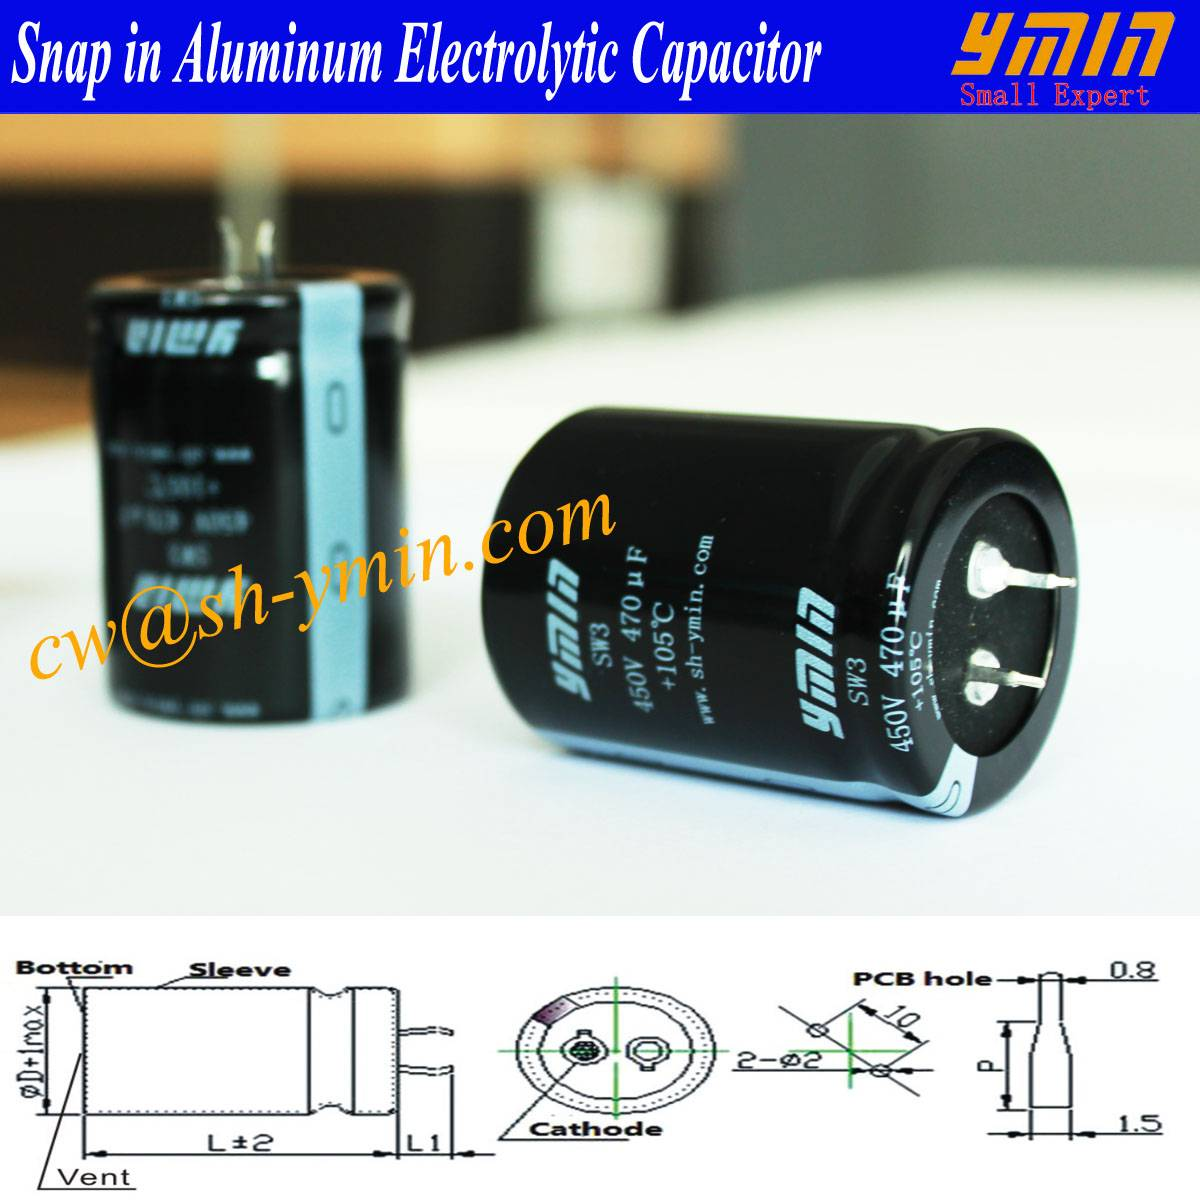 DC Capacitor Snap in Electrolytic Capacitor for EV Charging Piles and EV Charging Post